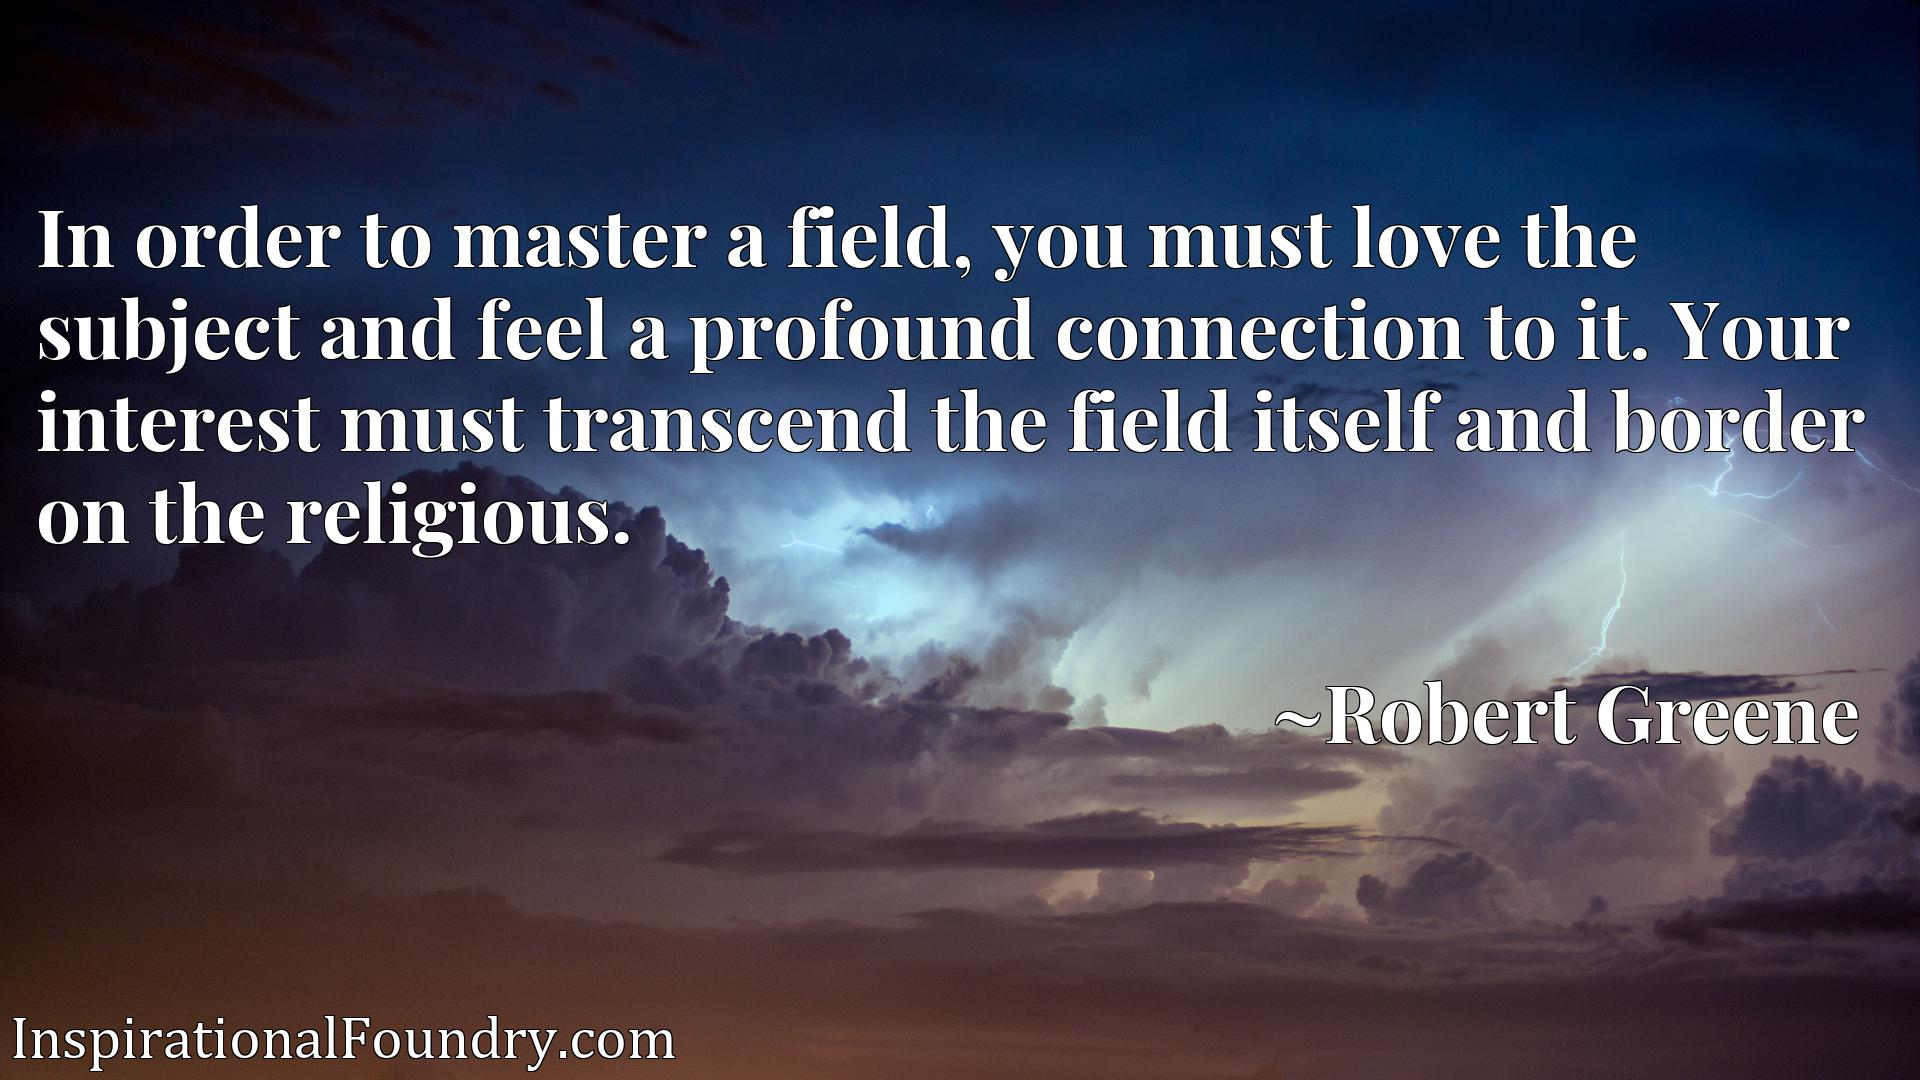 In order to master a field, you must love the subject and feel a profound connection to it. Your interest must transcend the field itself and border on the religious.